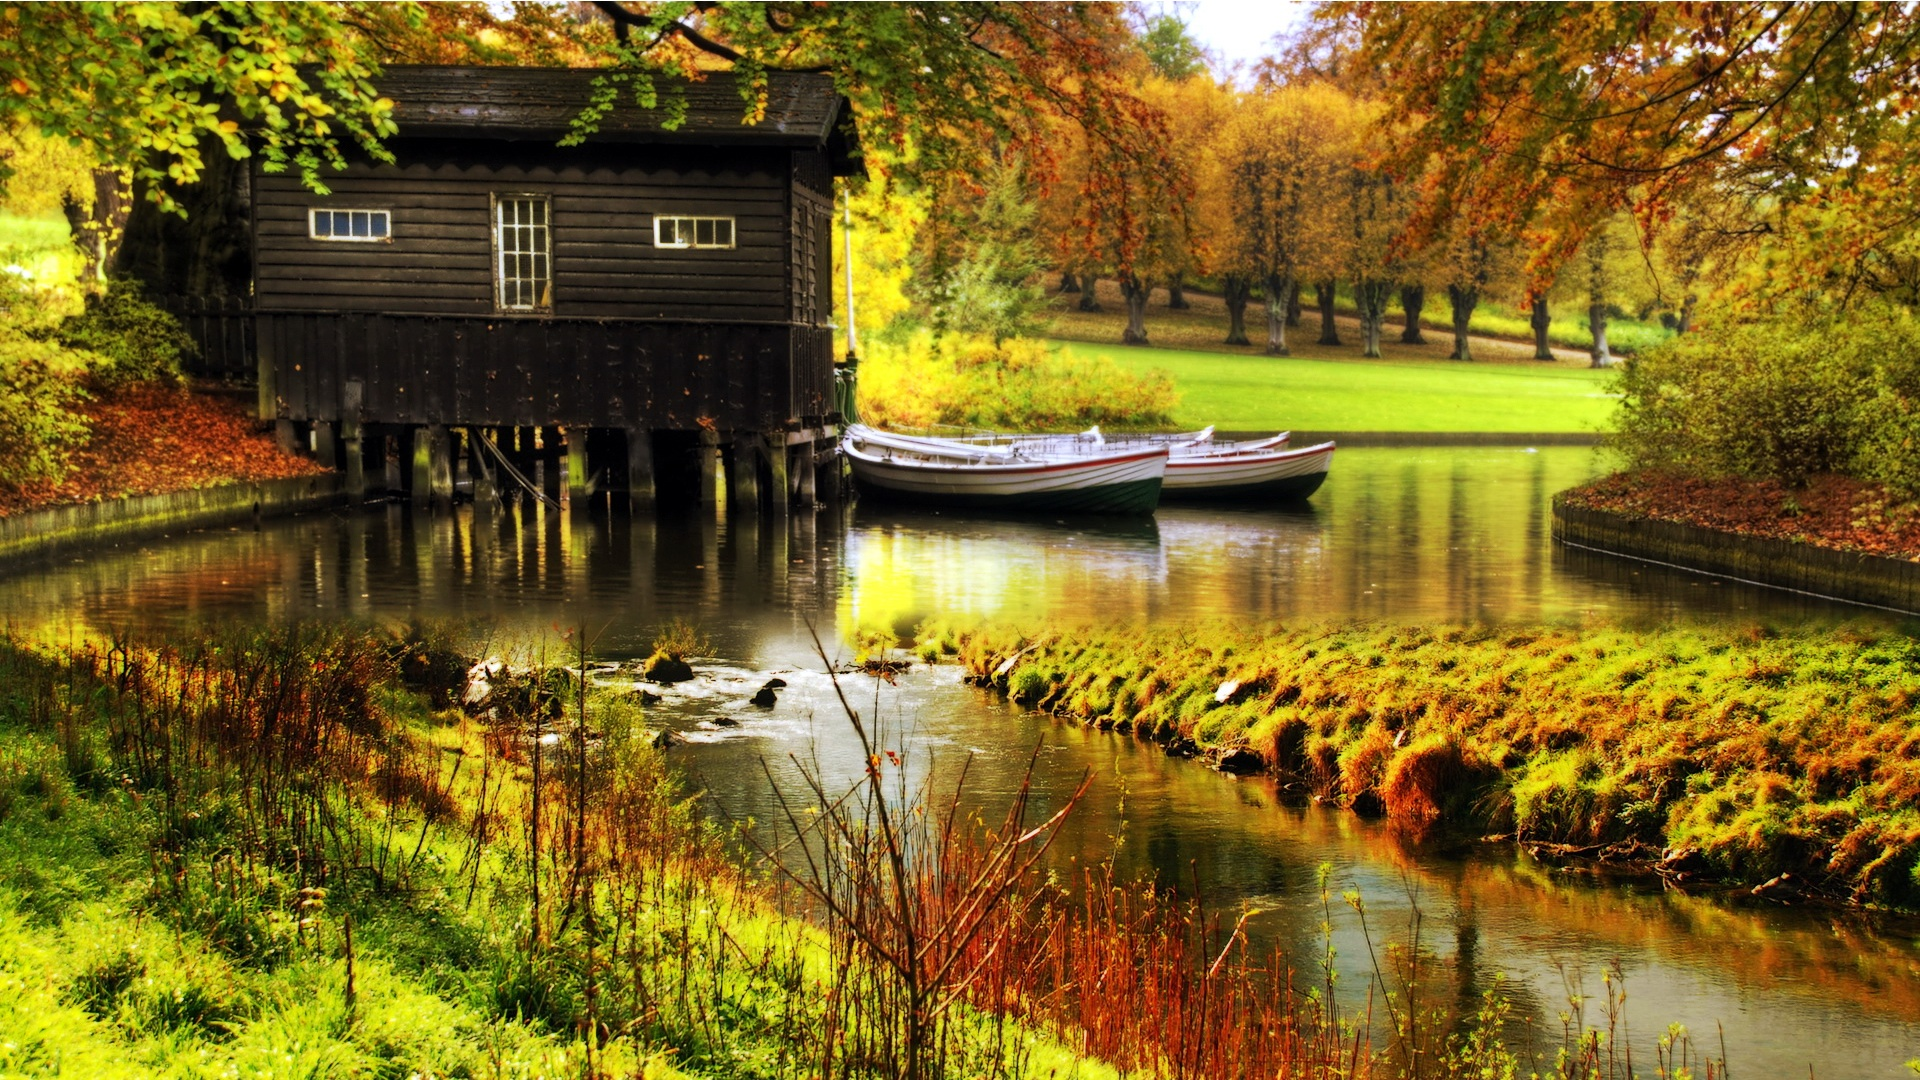 Dream Cottage - Beautiful Scenery